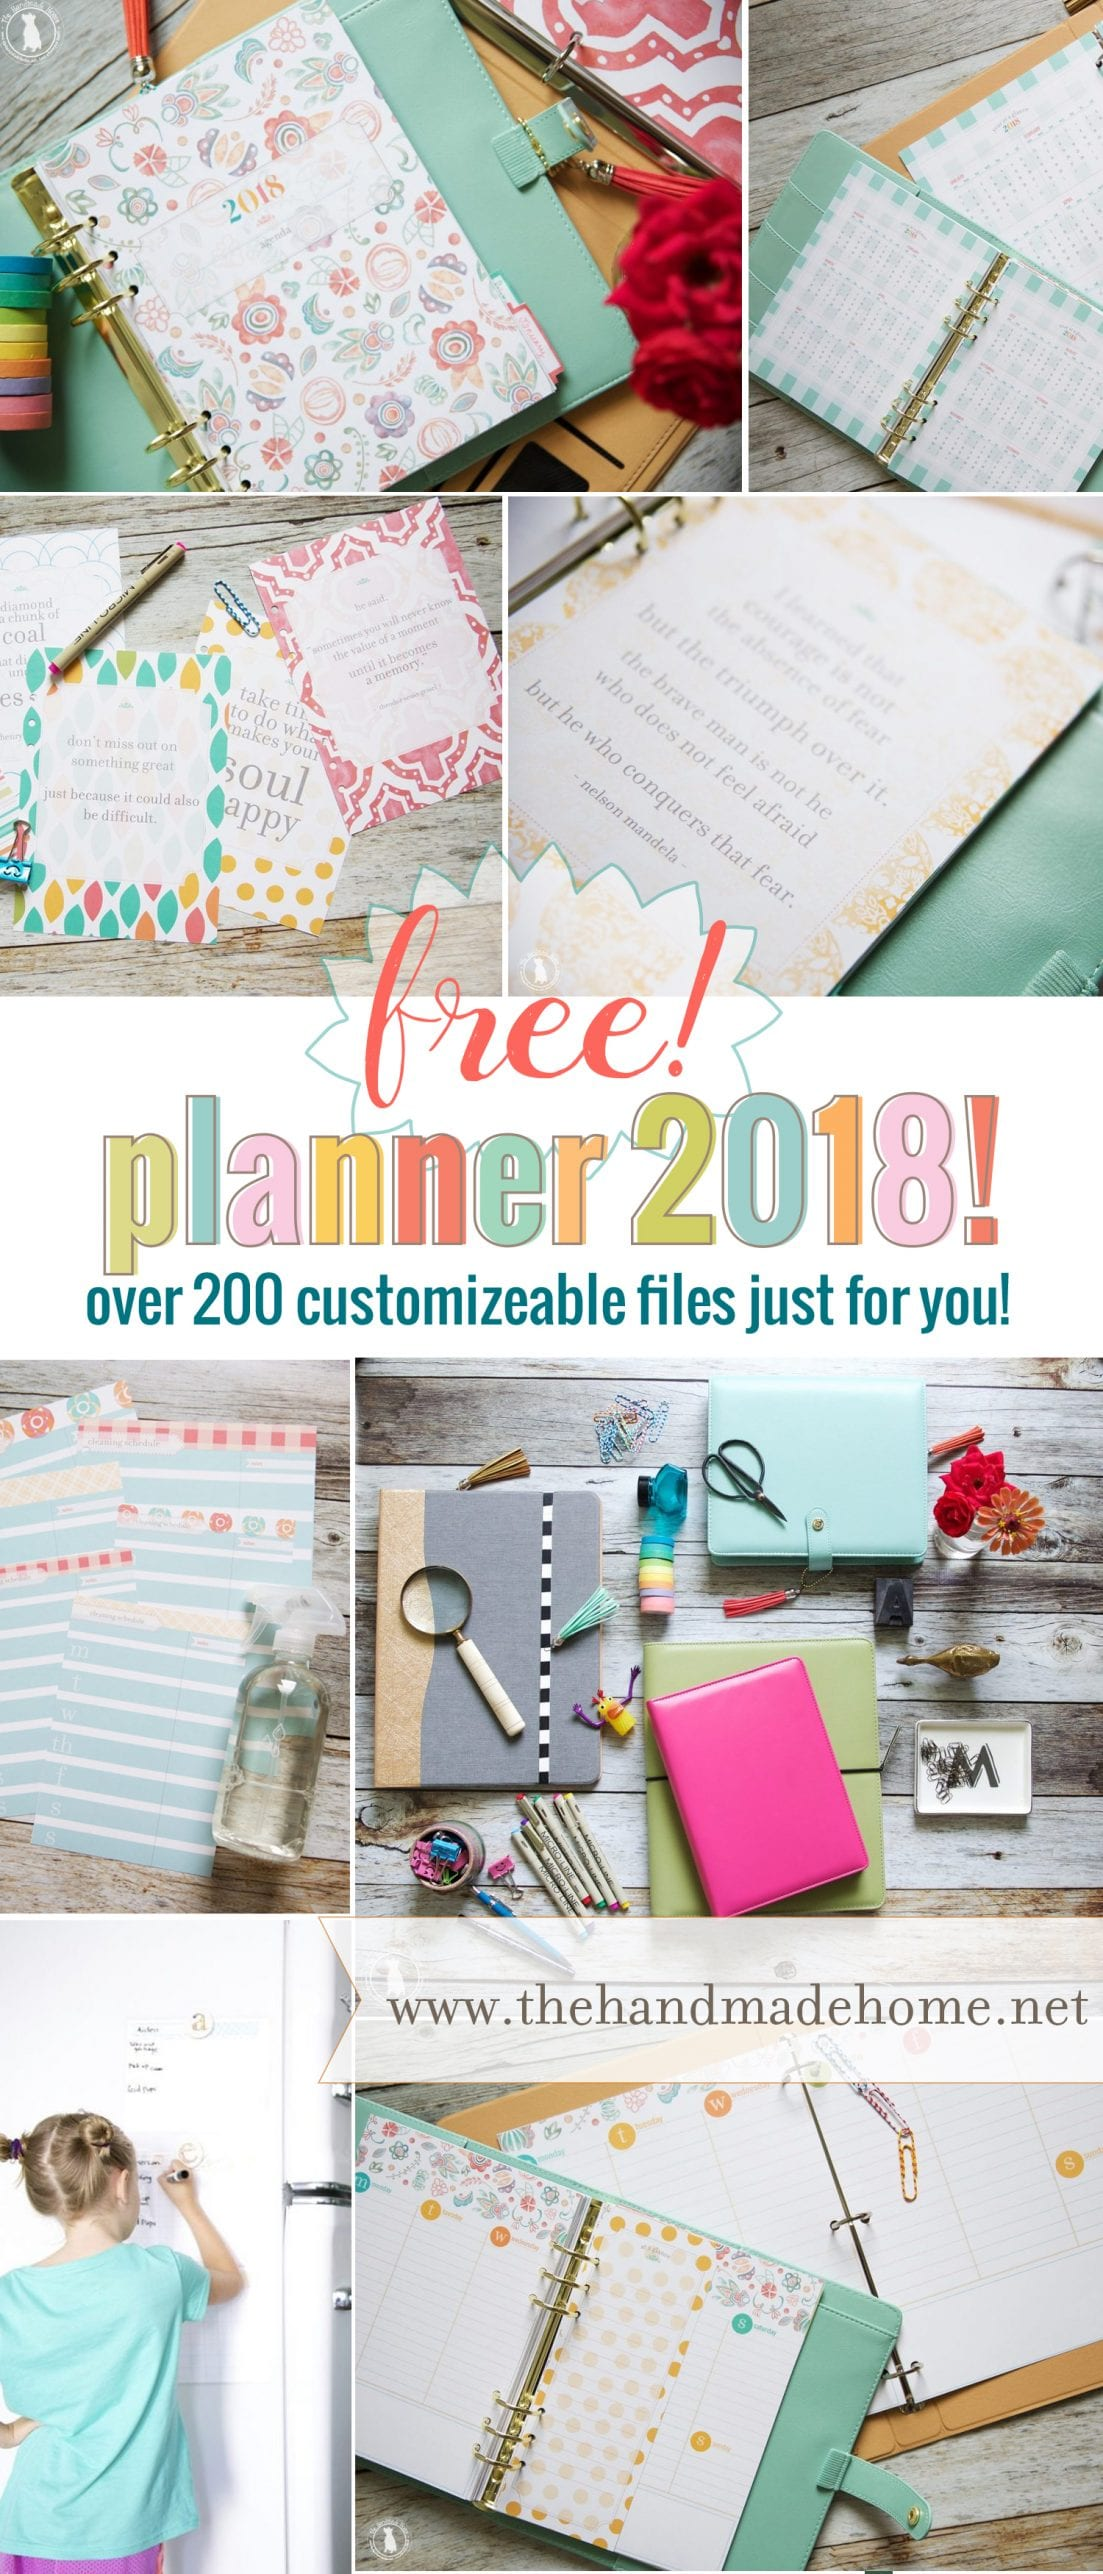 Calendar Home Planner : Free planner over customizable files the handmade home